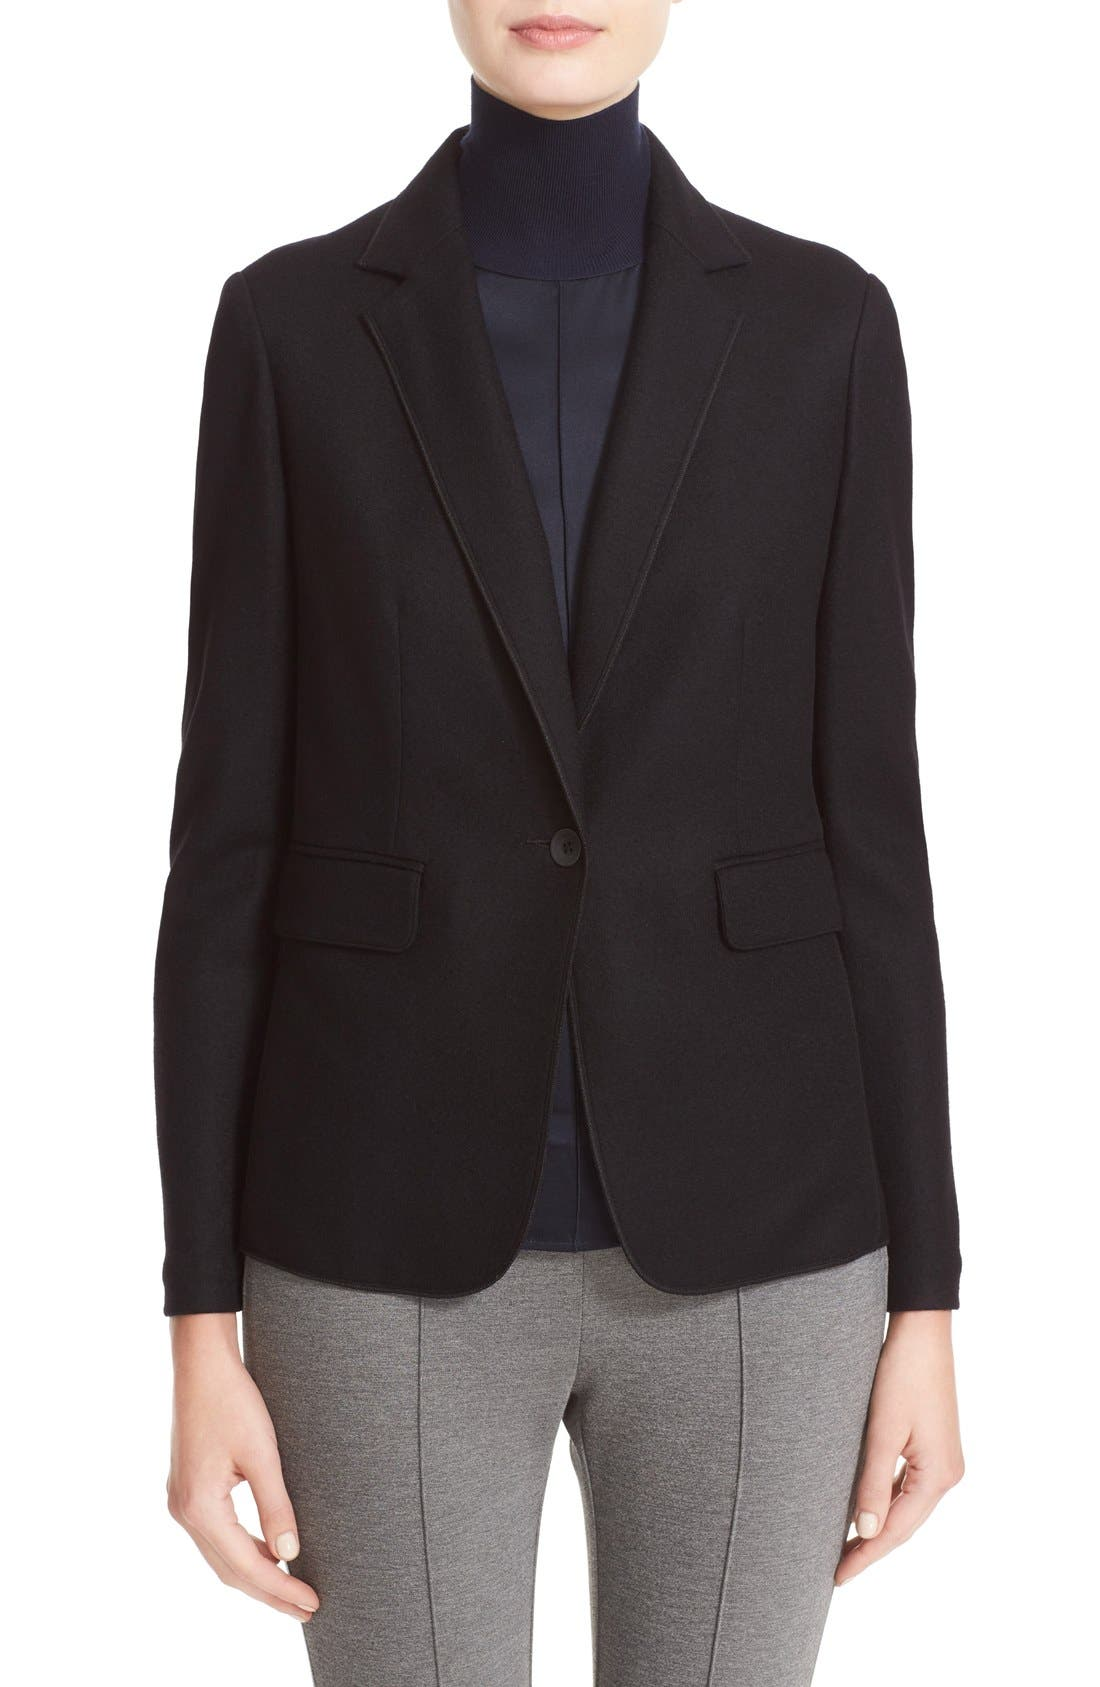 RAG & BONE, Club Wool Blazer, Main thumbnail 1, color, BLACK